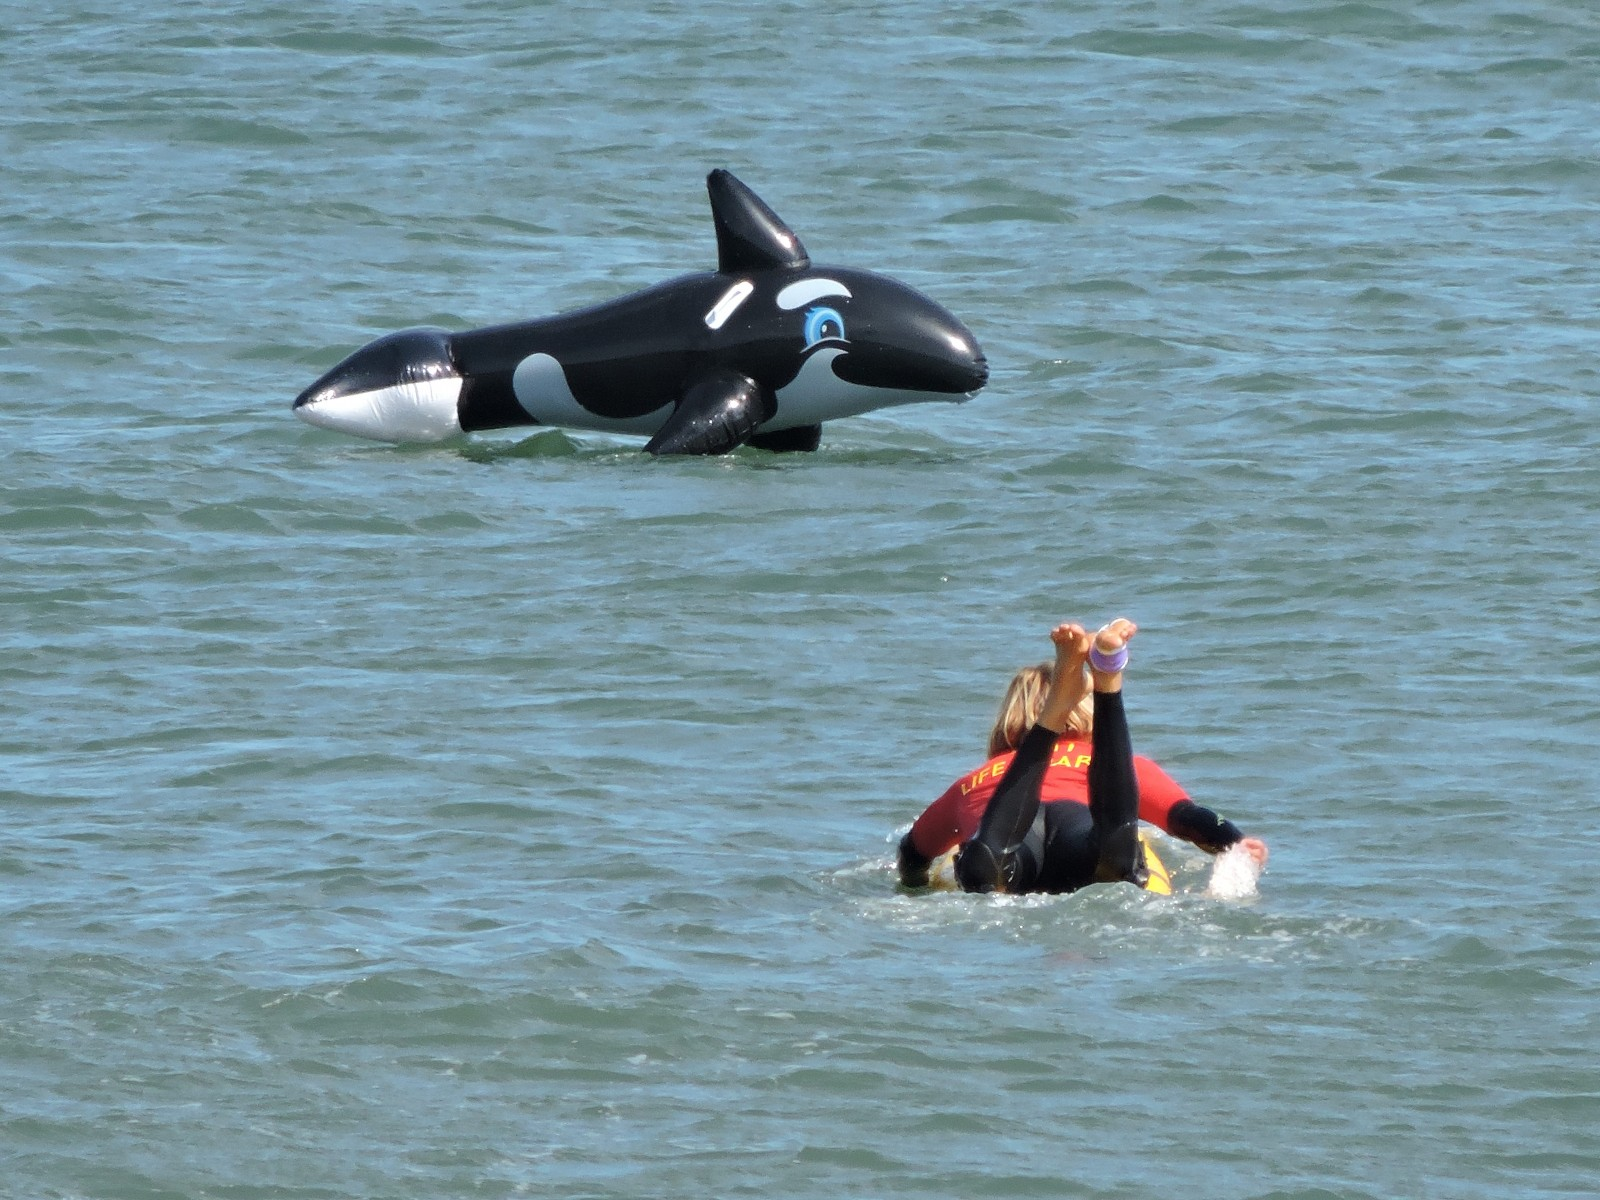 Lifeguard dramatically rescues a stranded killer whale!